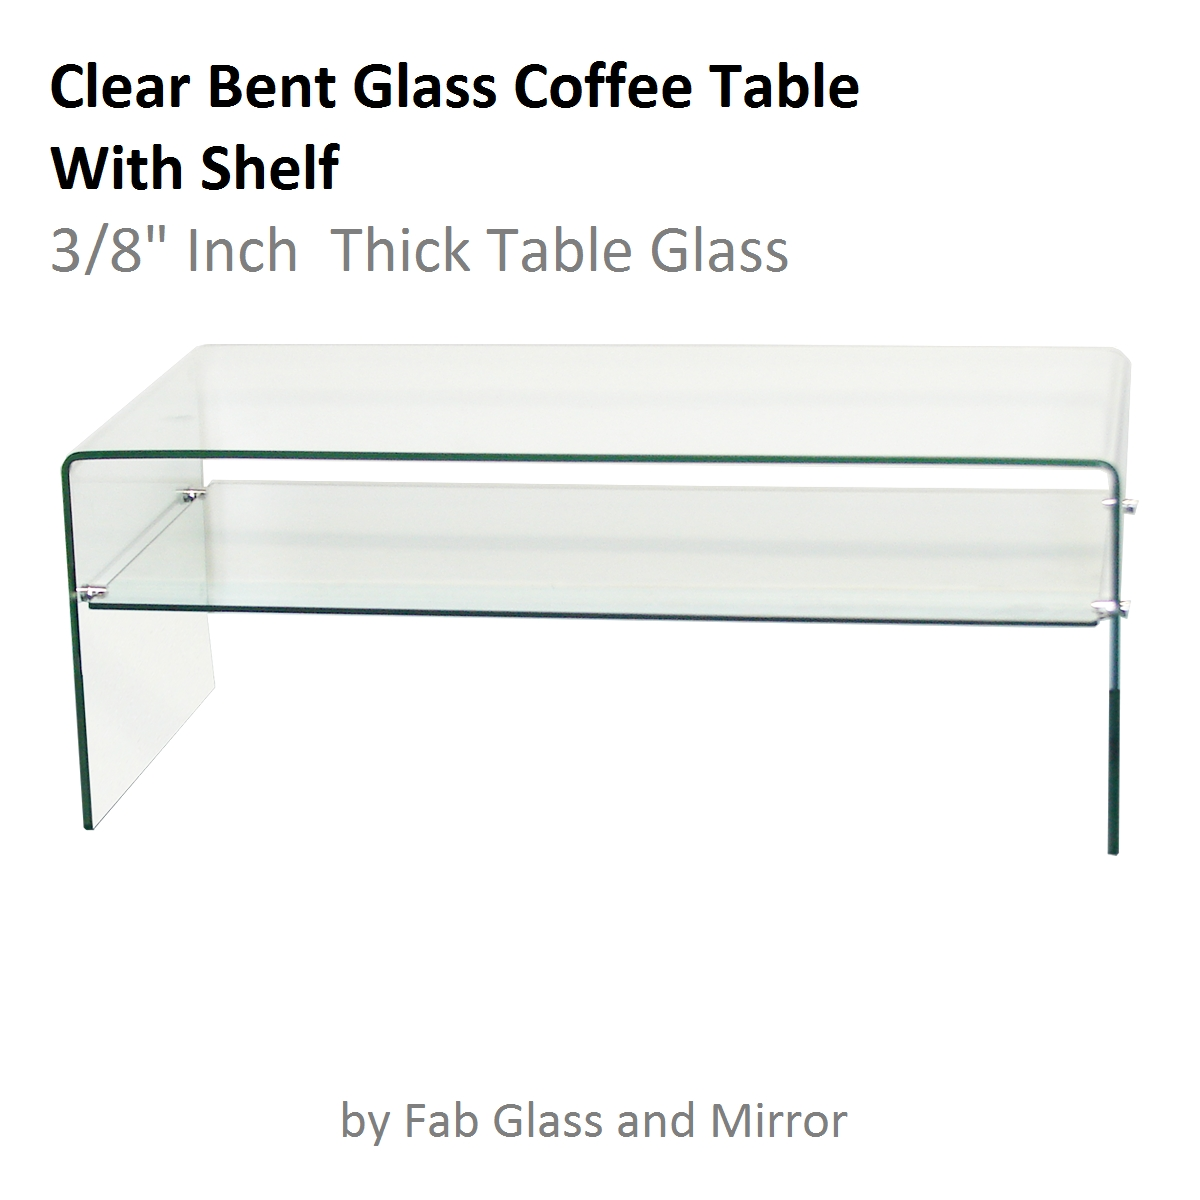 "Clear Bent Glass Coffee Table With Shelf, 3/8"" Inch Thick intended for Glass Coffee Tables With Shelf (Image 3 of 30)"